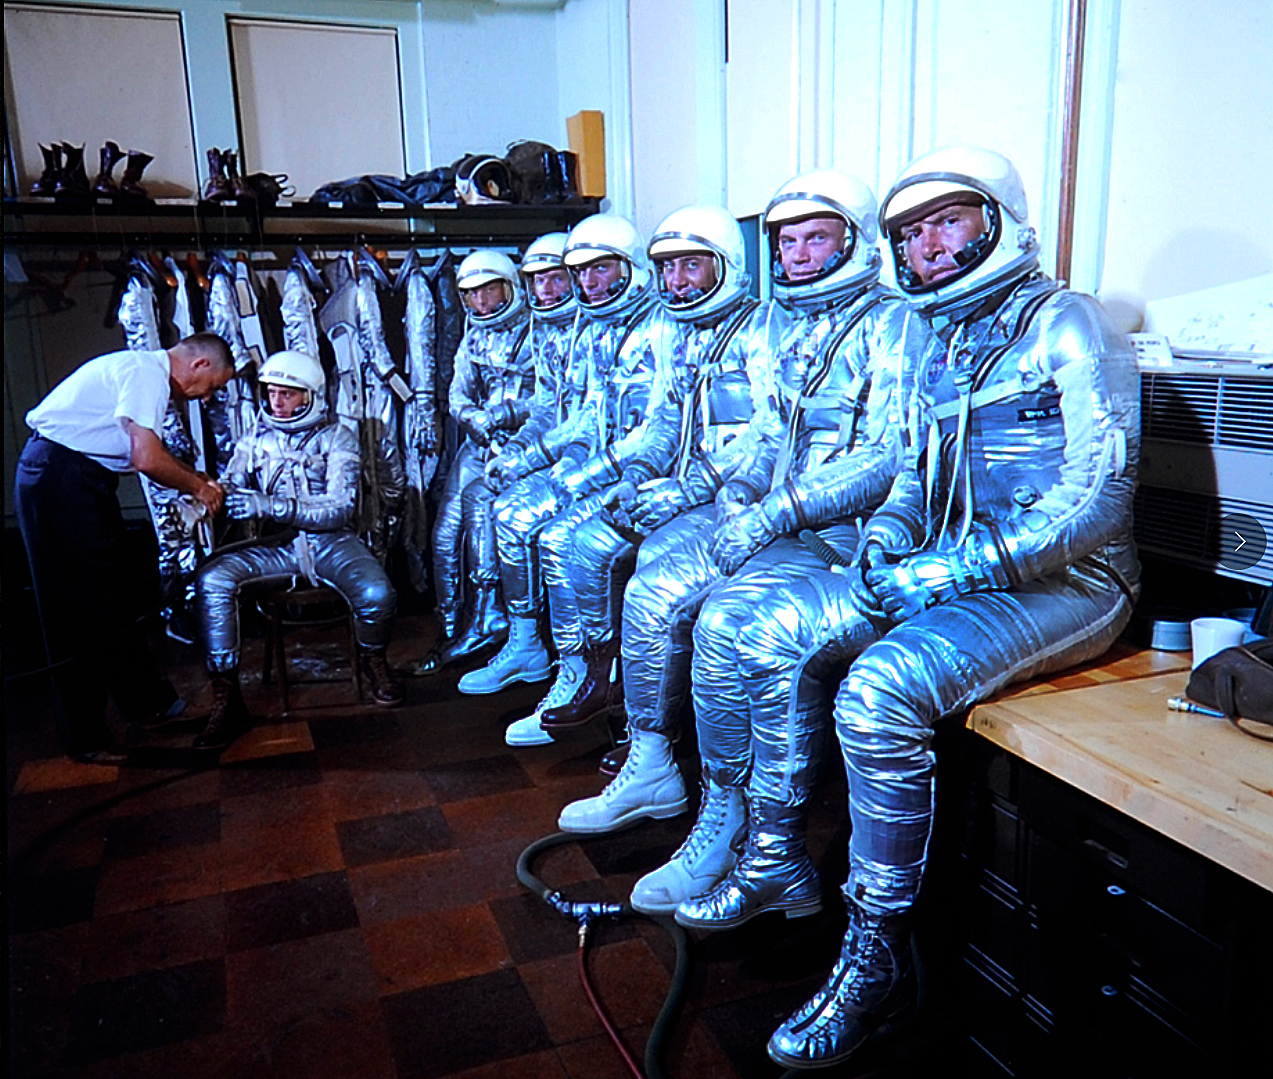 Mercury and Gemini Astronauts - Pics about space